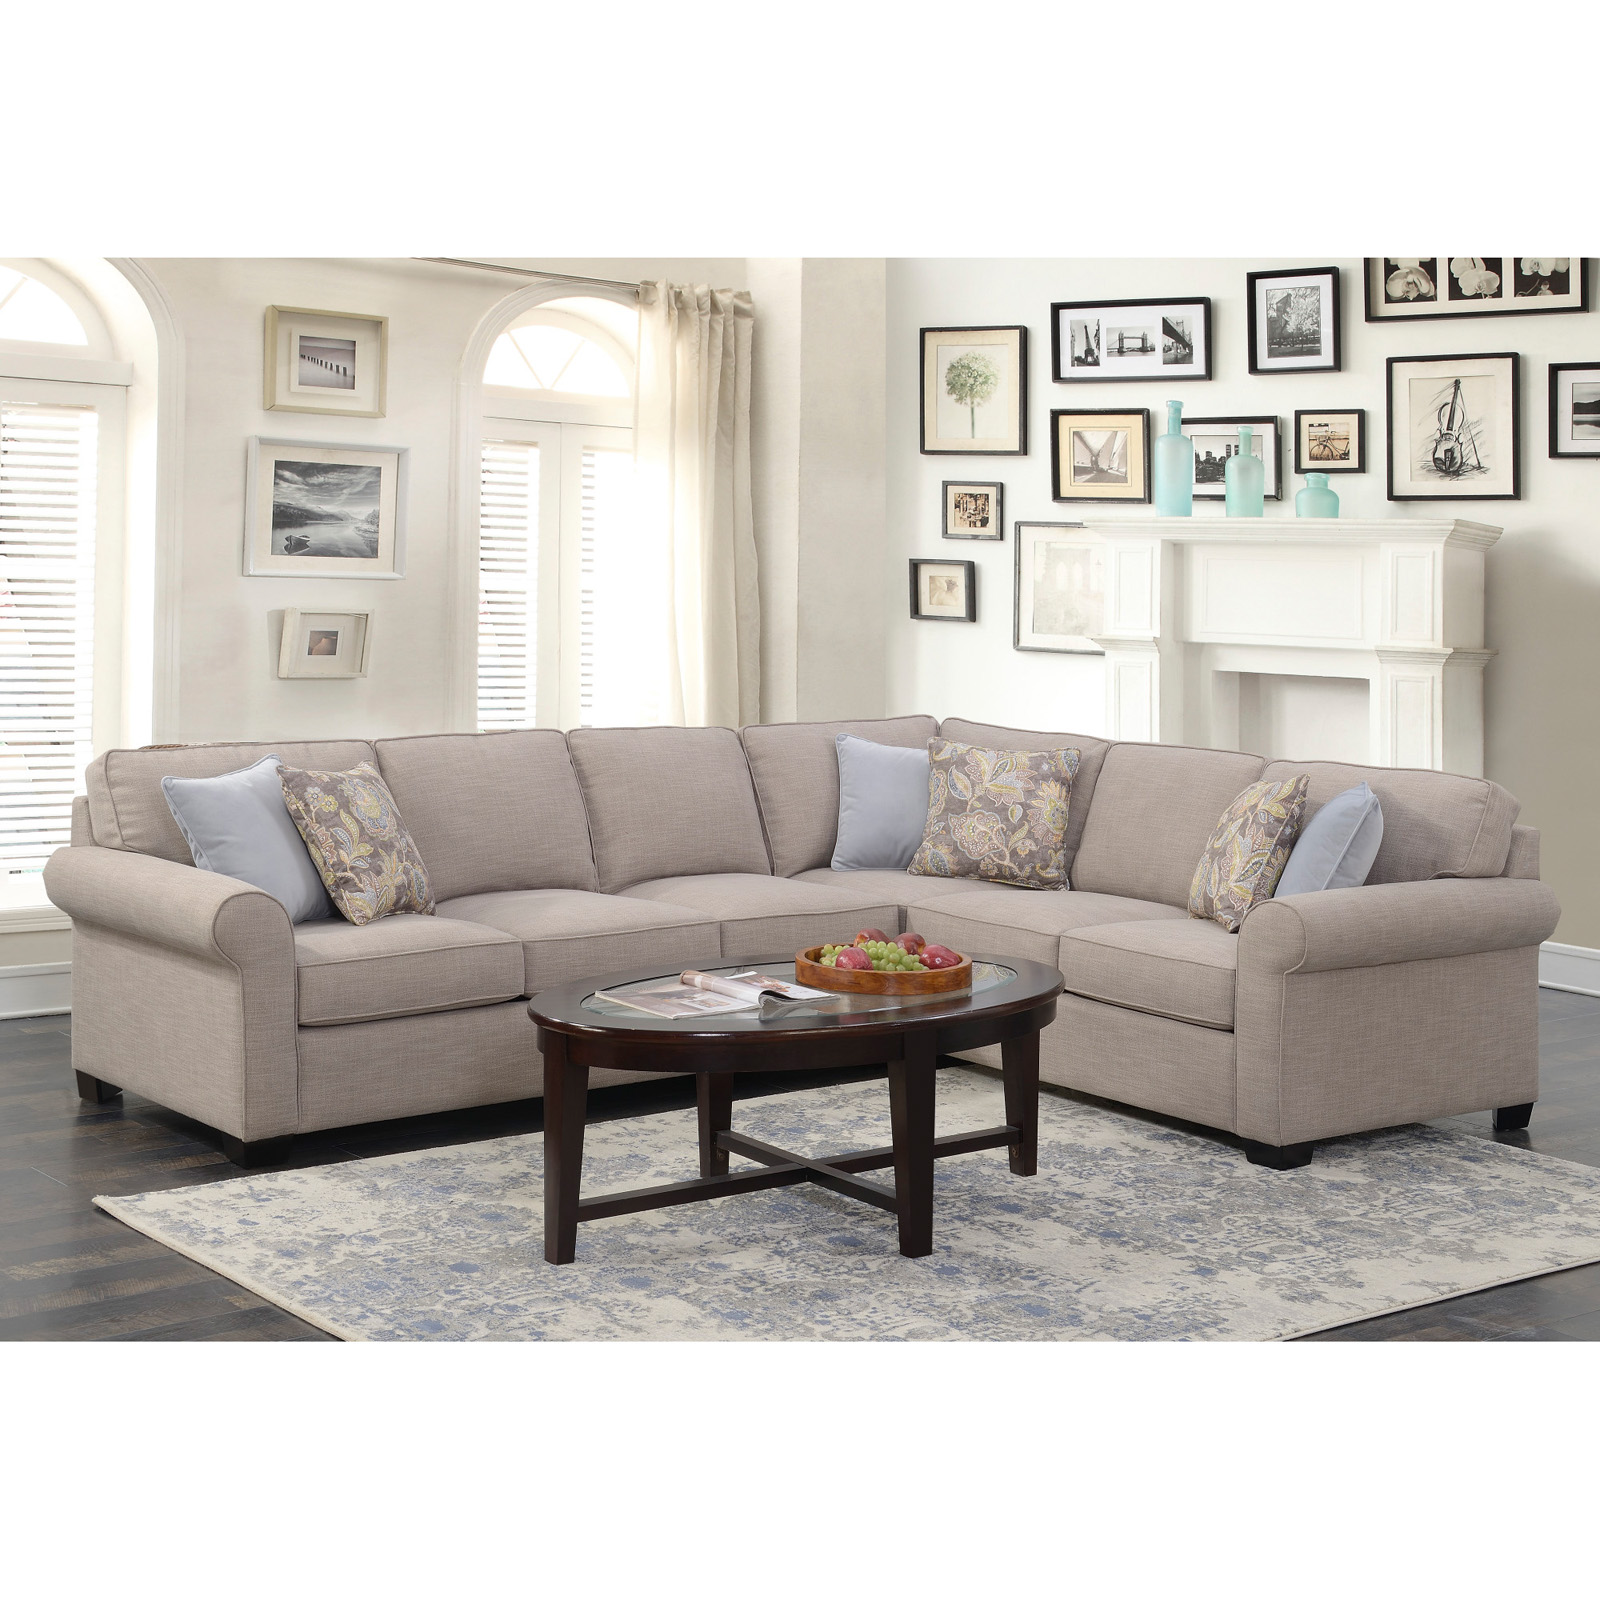 Emerald Home Angelica 2 Piece Sleeper Sectional Sofa